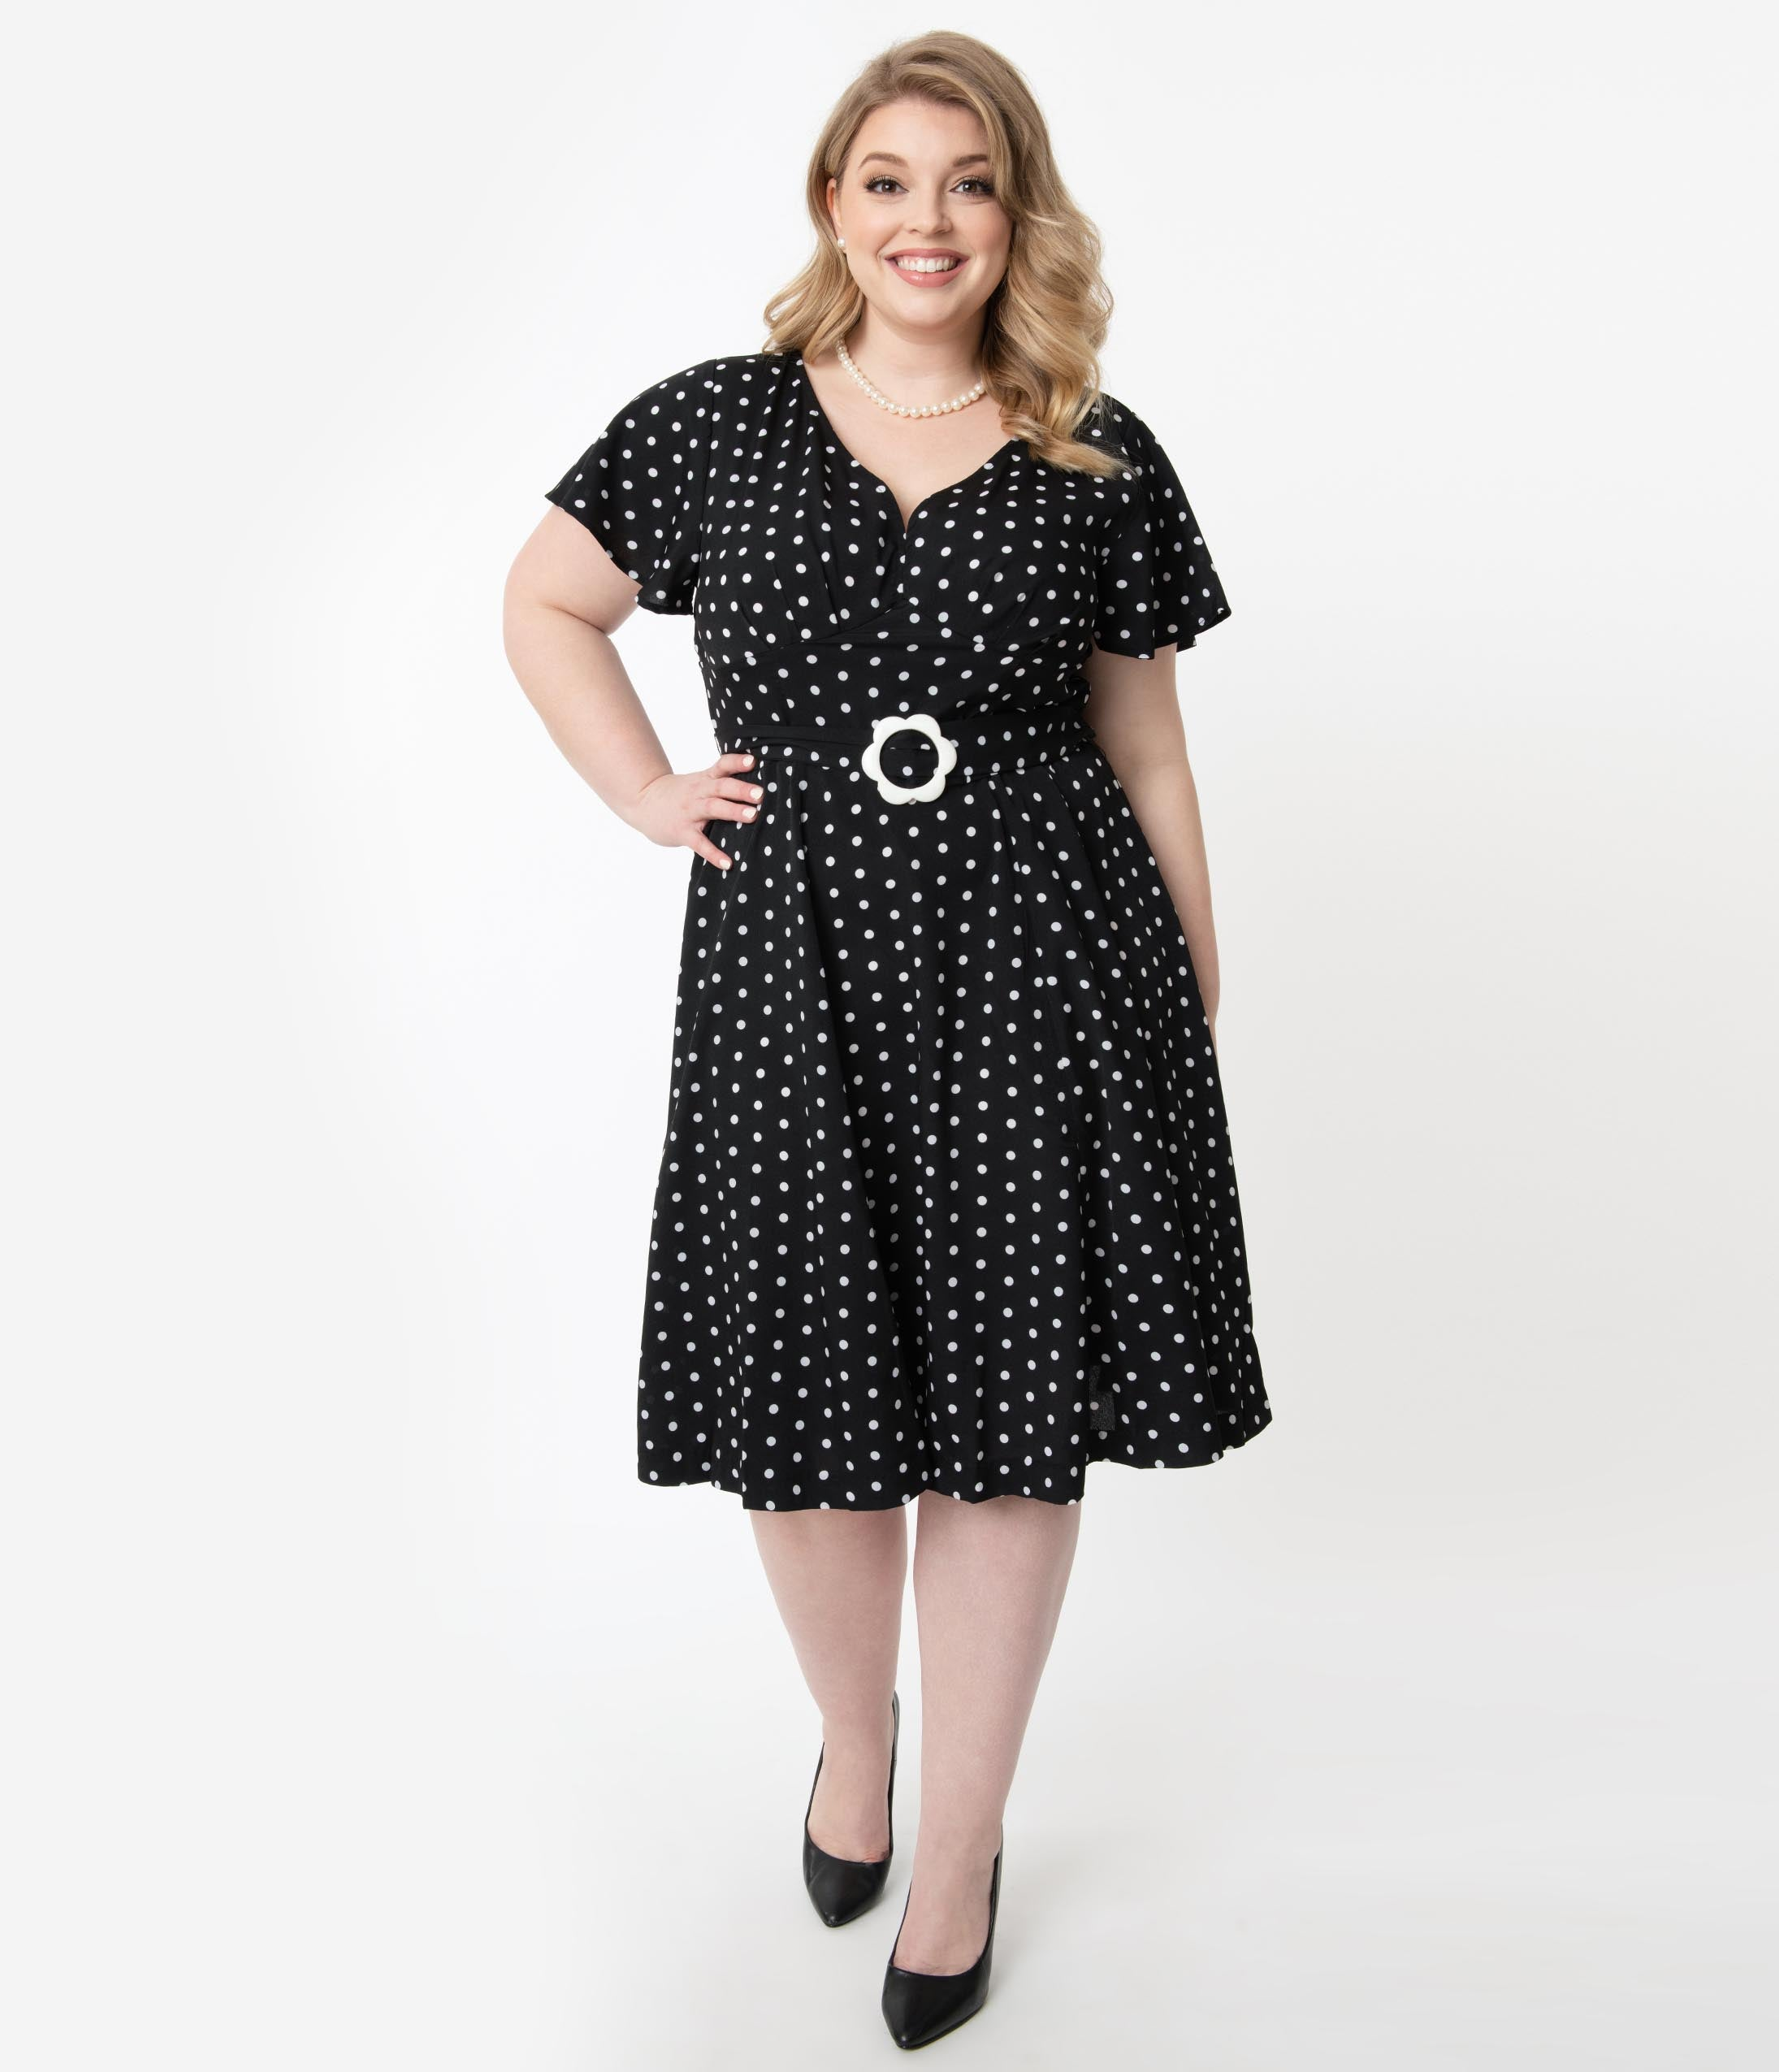 1940s Dress Styles Unique Vintage Plus Size 1940S Black  White Polka Dot Kay Swing Dress $68.00 AT vintagedancer.com